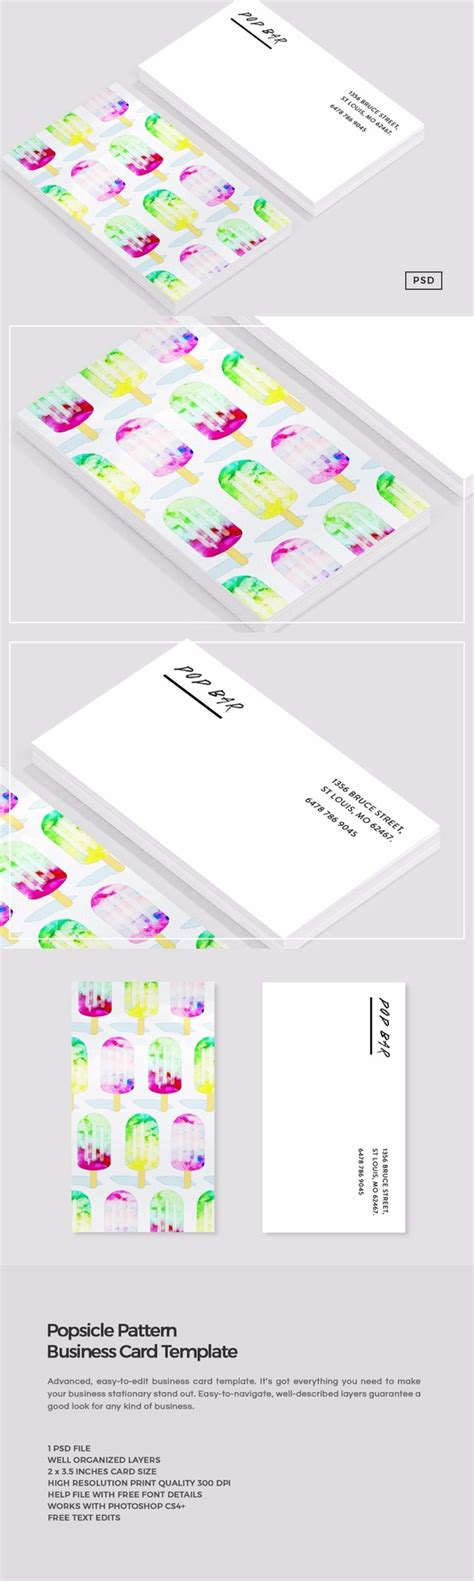 free watercolor business card template watercolor popsicle business card business card